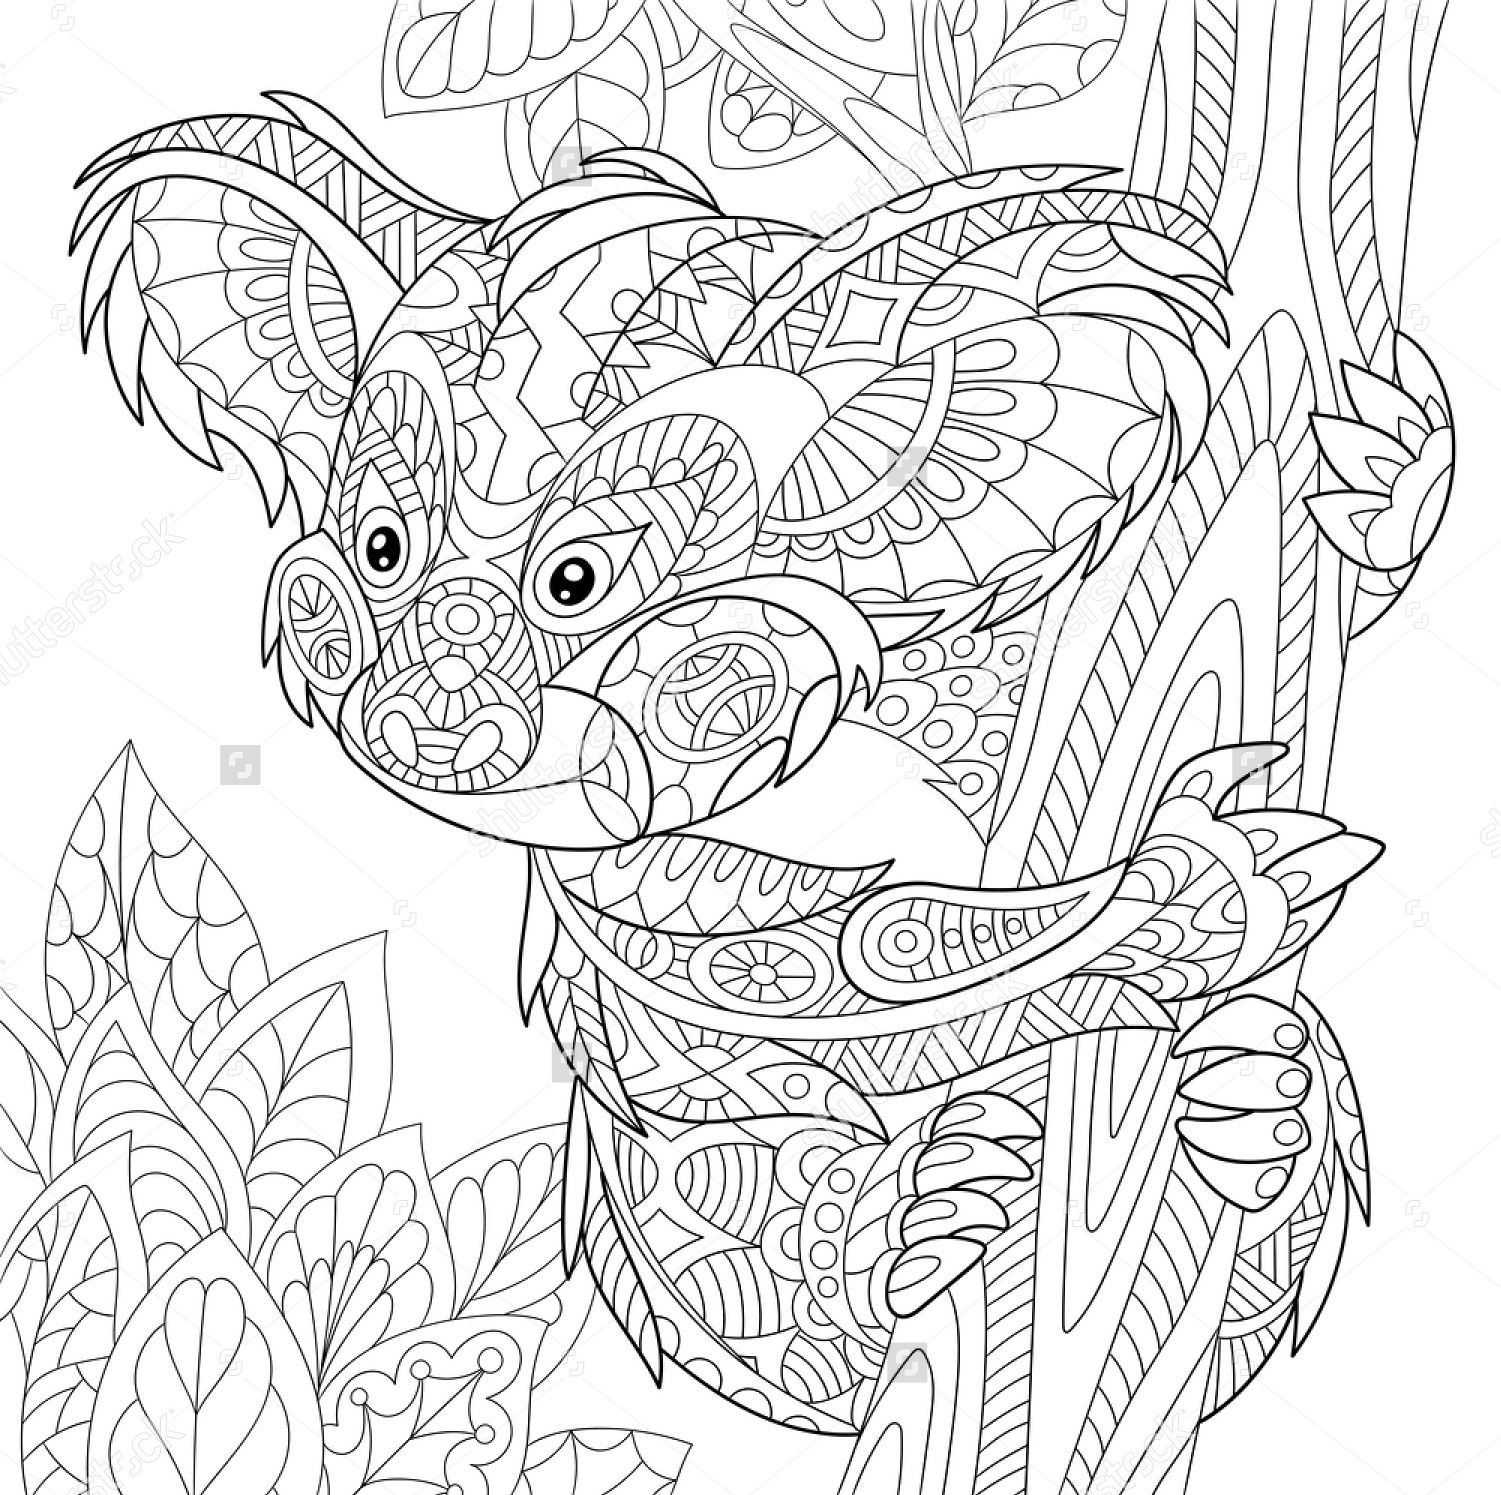 Pin By Rejane Delloup On Colo Animal Coloring Pages Bear Coloring Pages Animal Coloring Books